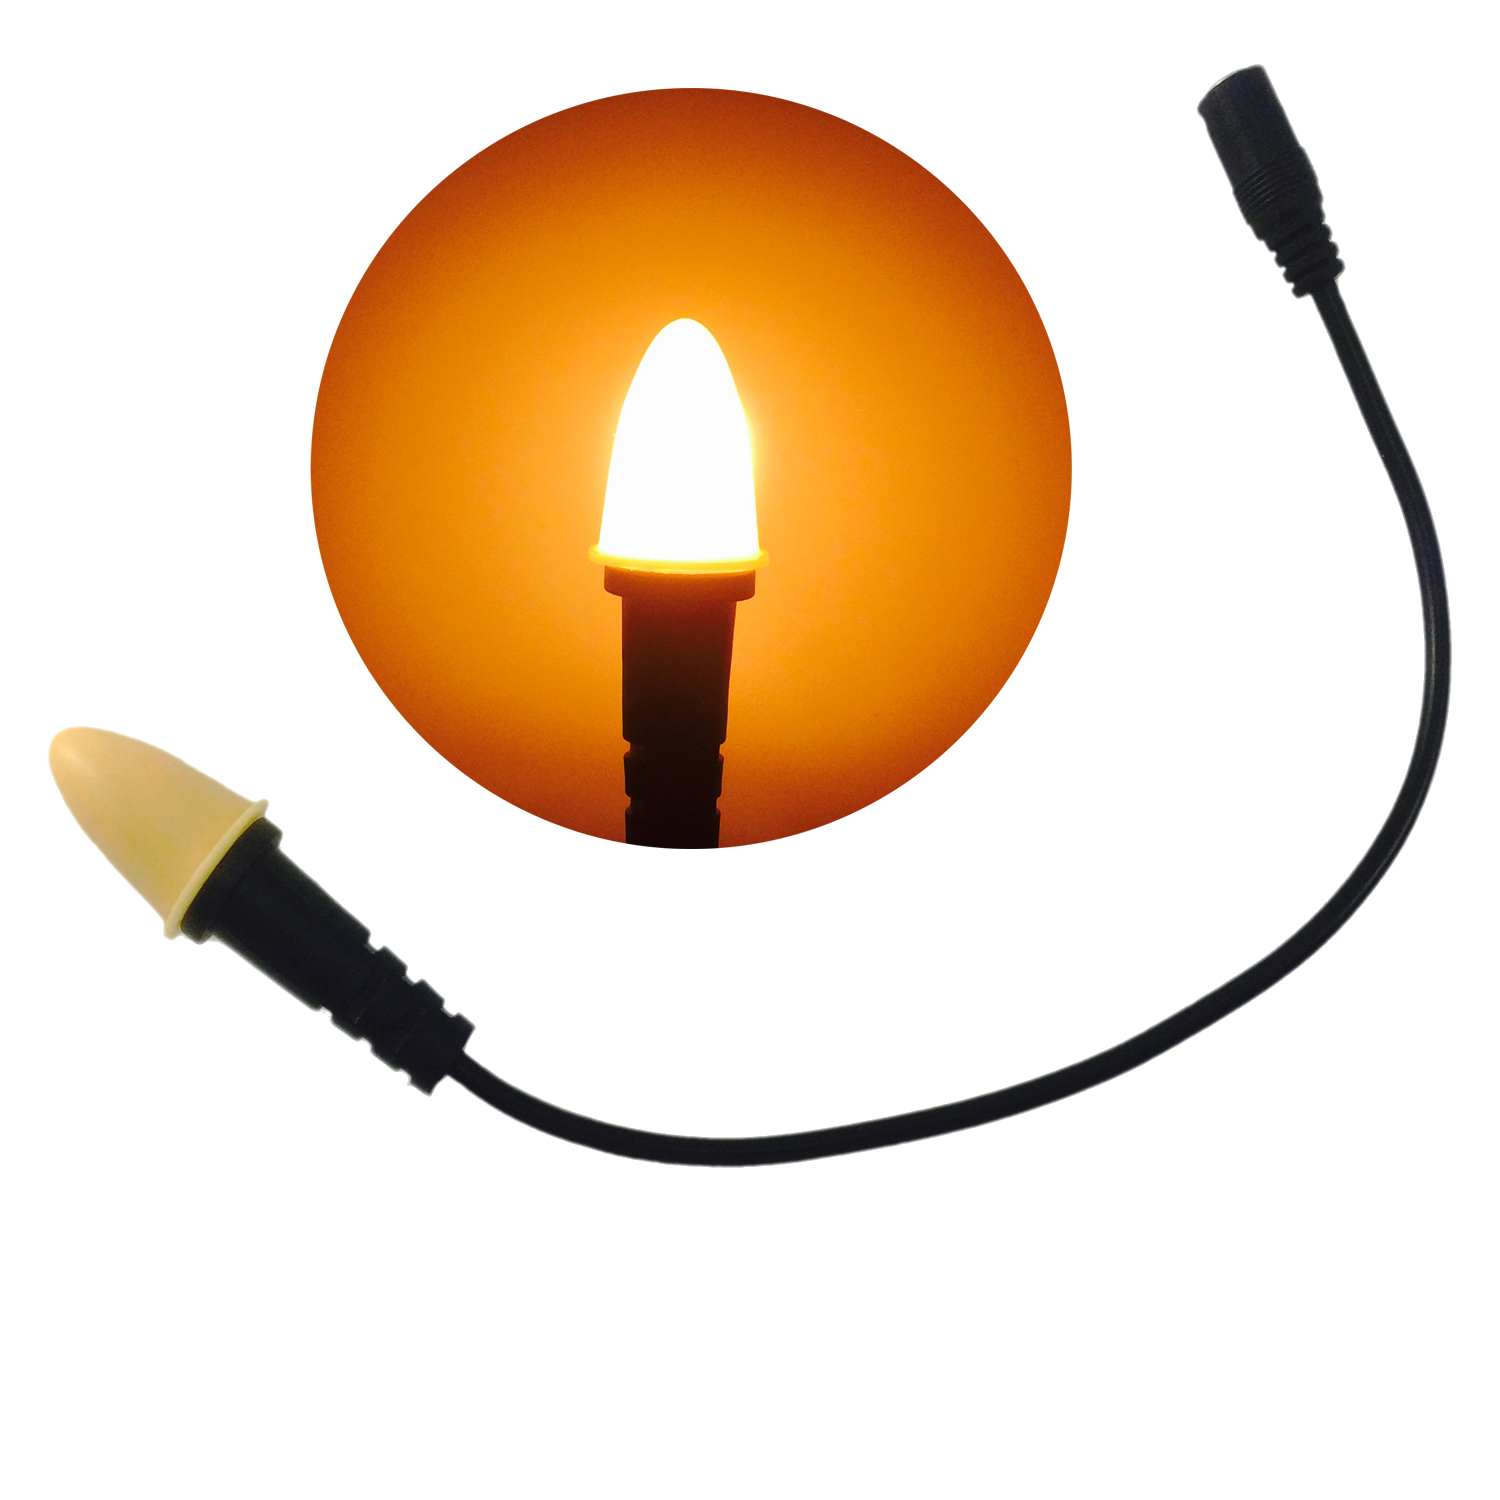 Candle Flame Png | Free download best Candle Flame Png on ... for Lamp Animation Png  56mzq